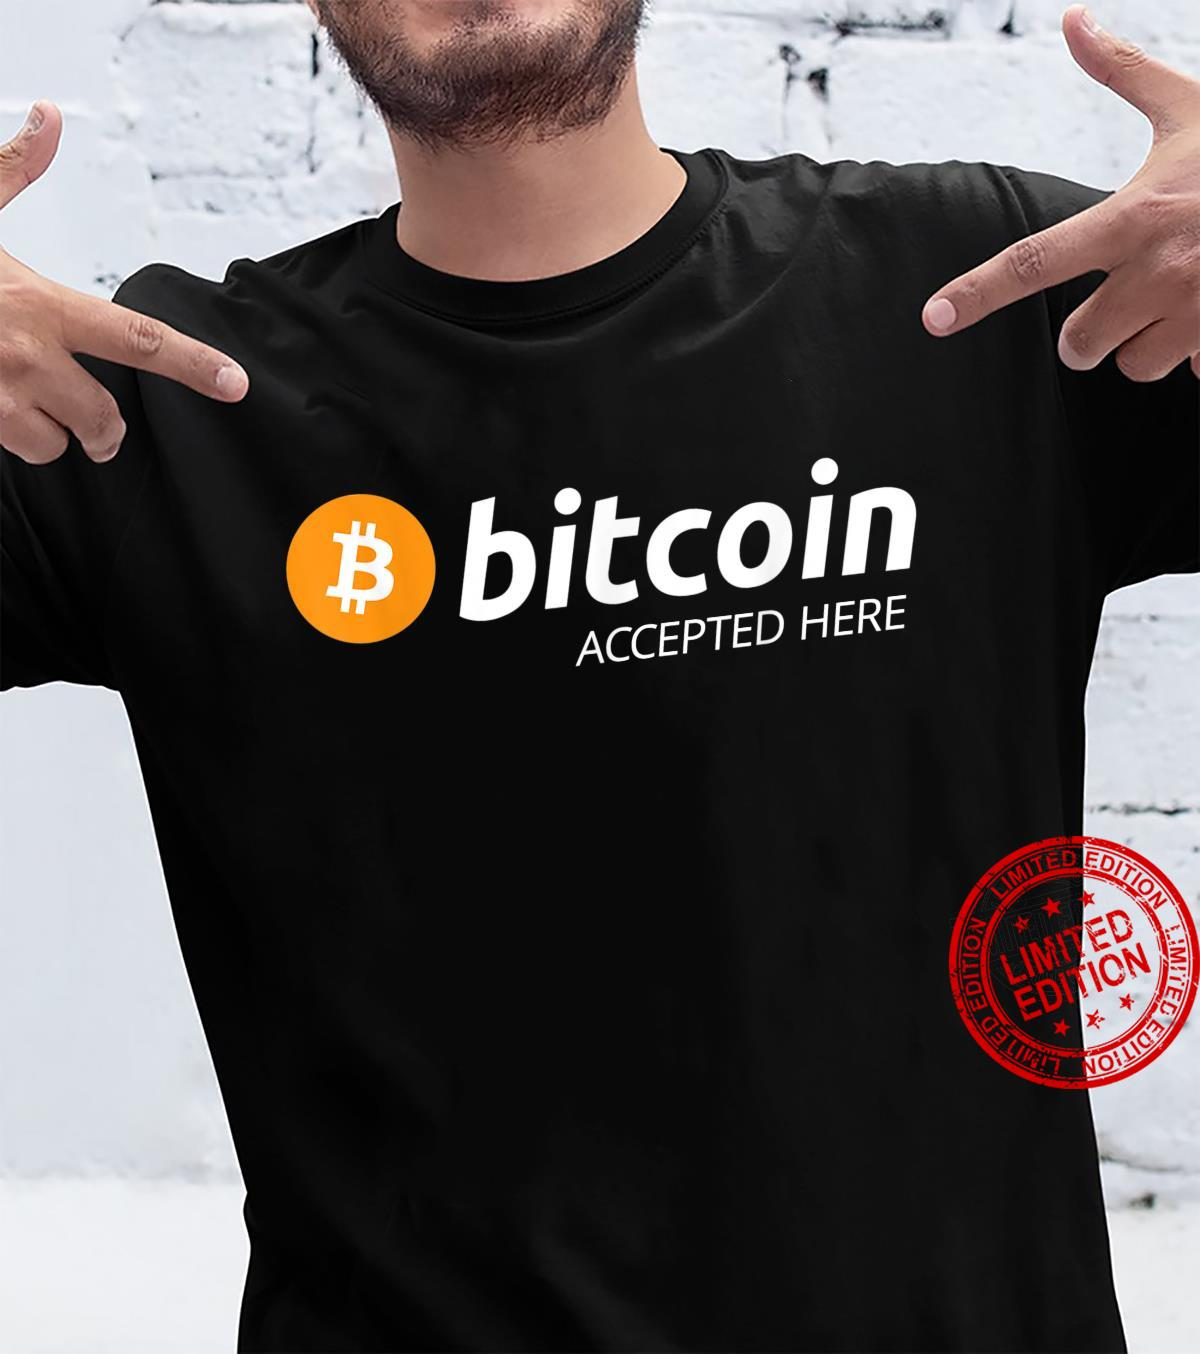 Bitcoin Accepted Here Shirt Bitcoin Accepted Here Shirt